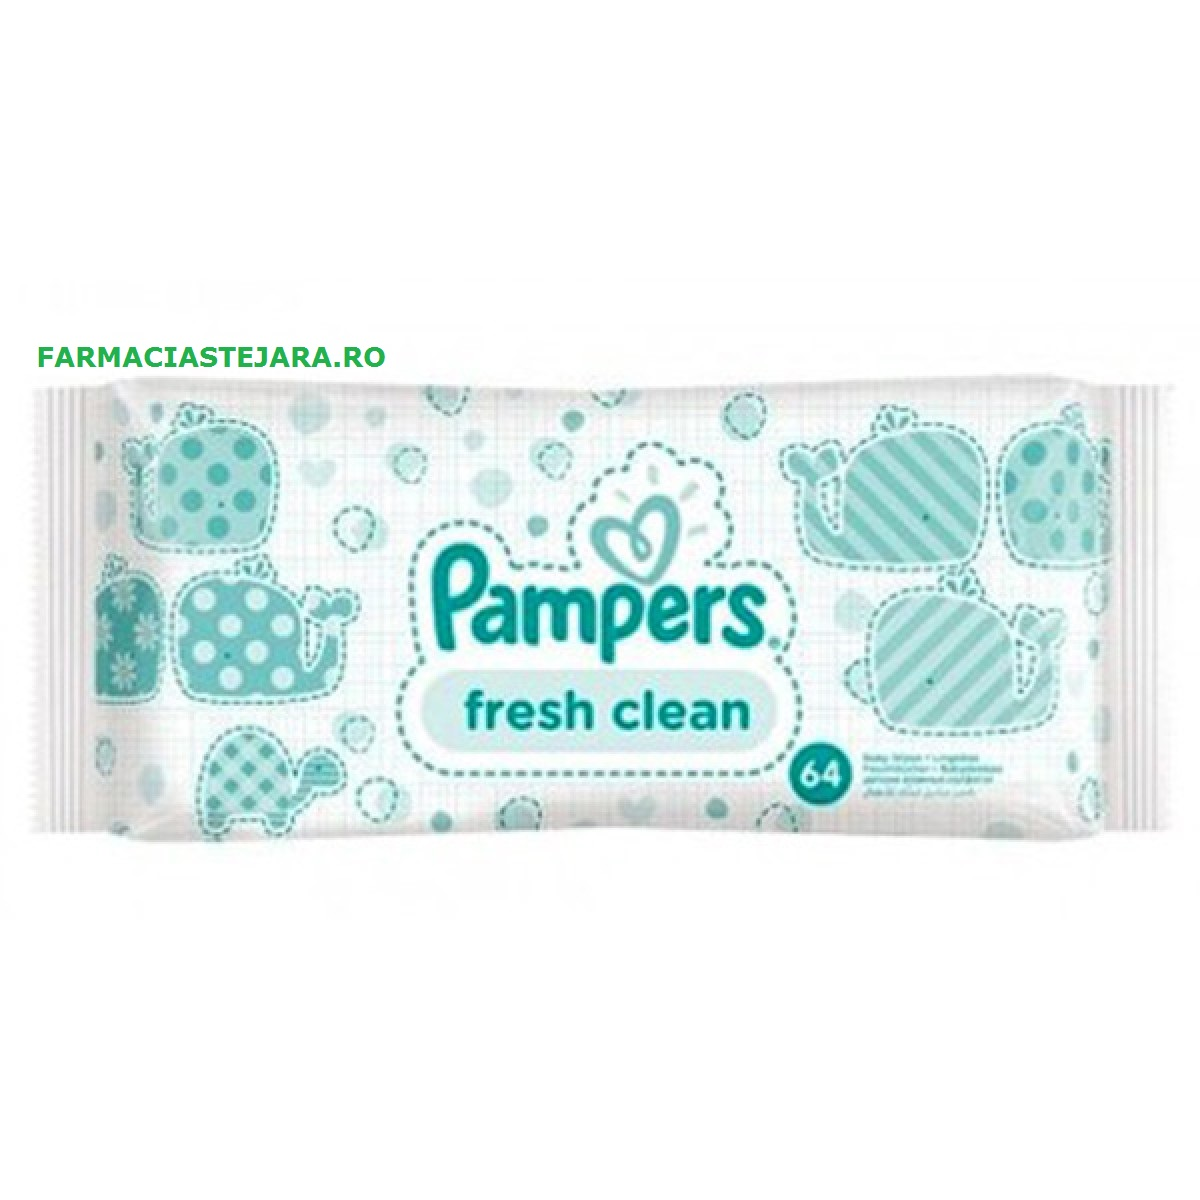 Pampers  Servetele  umede  baby  fresh X 64